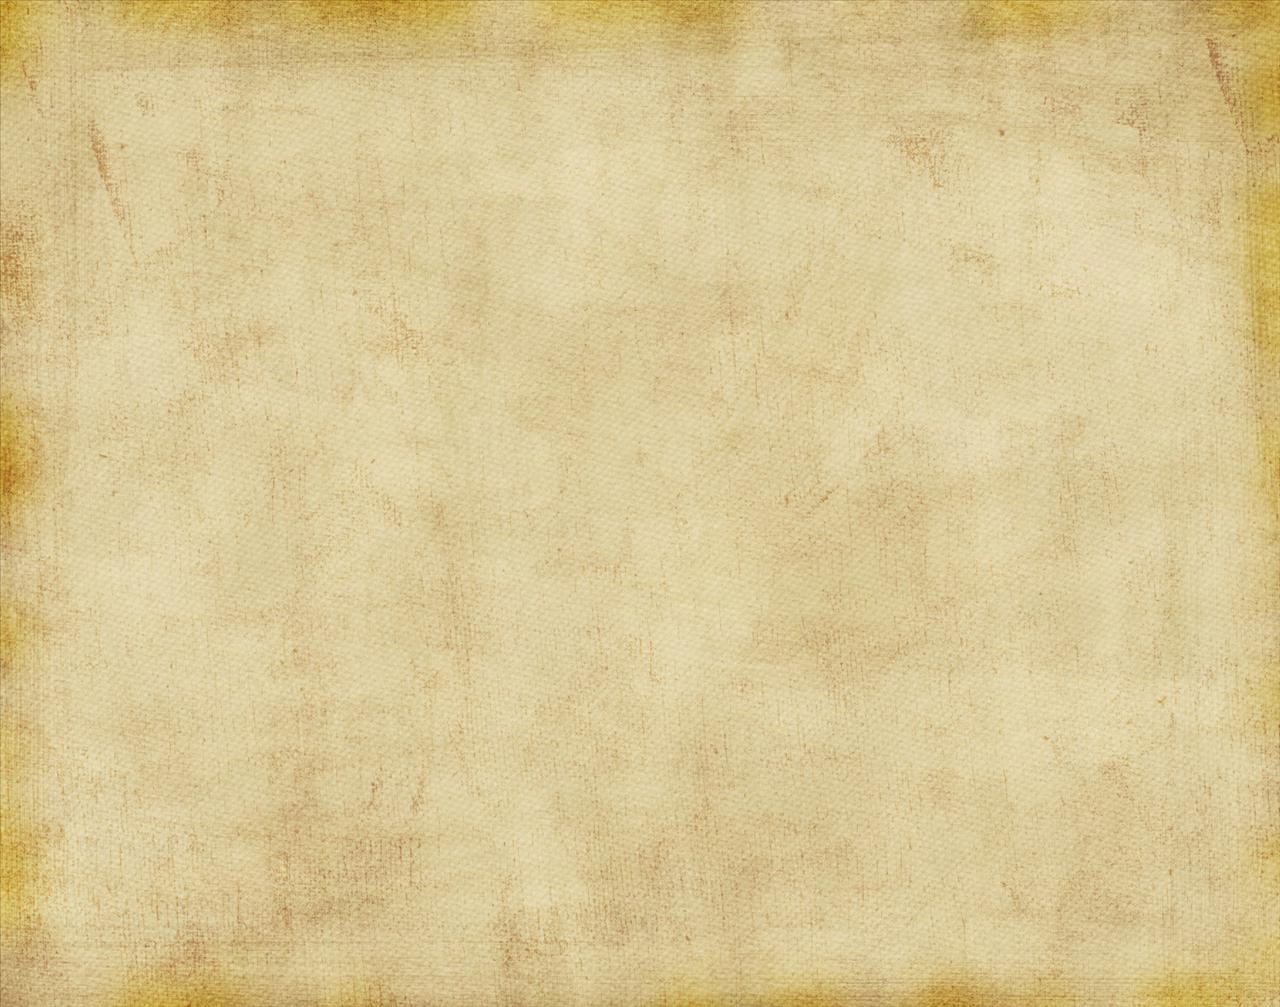 Tan paper background